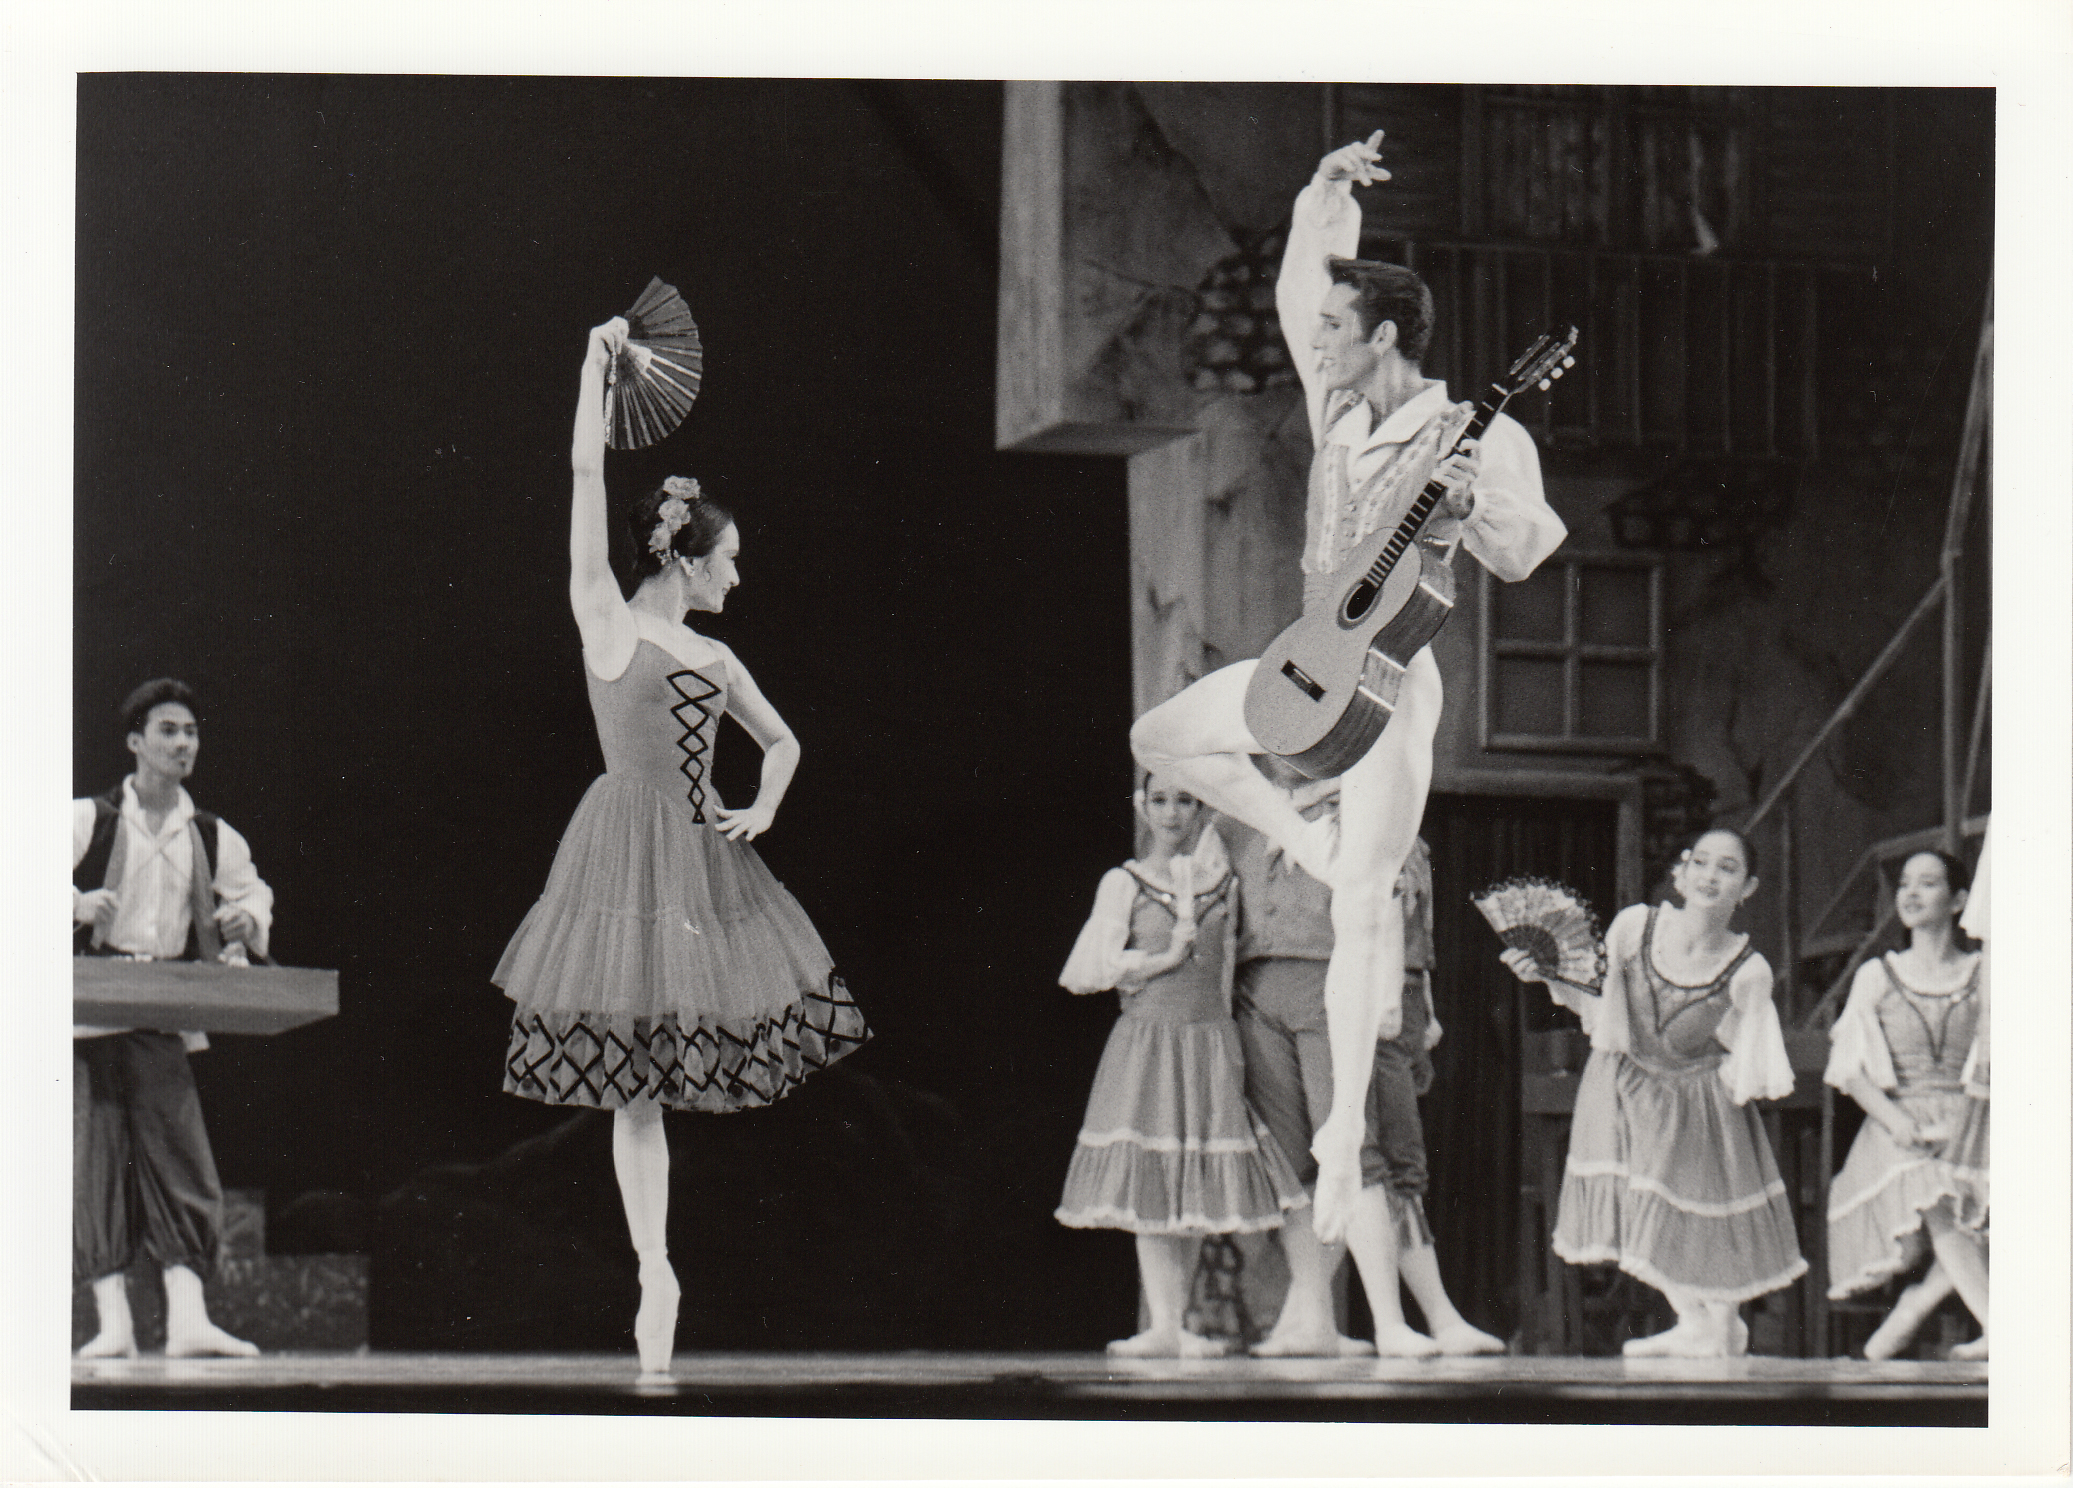 Don Quixote is marked by spirited dancing. Lisa Macuja as Kitri is partnered by American Ballet Theater's Parrish Maynard as Basilio in this 1993 production.